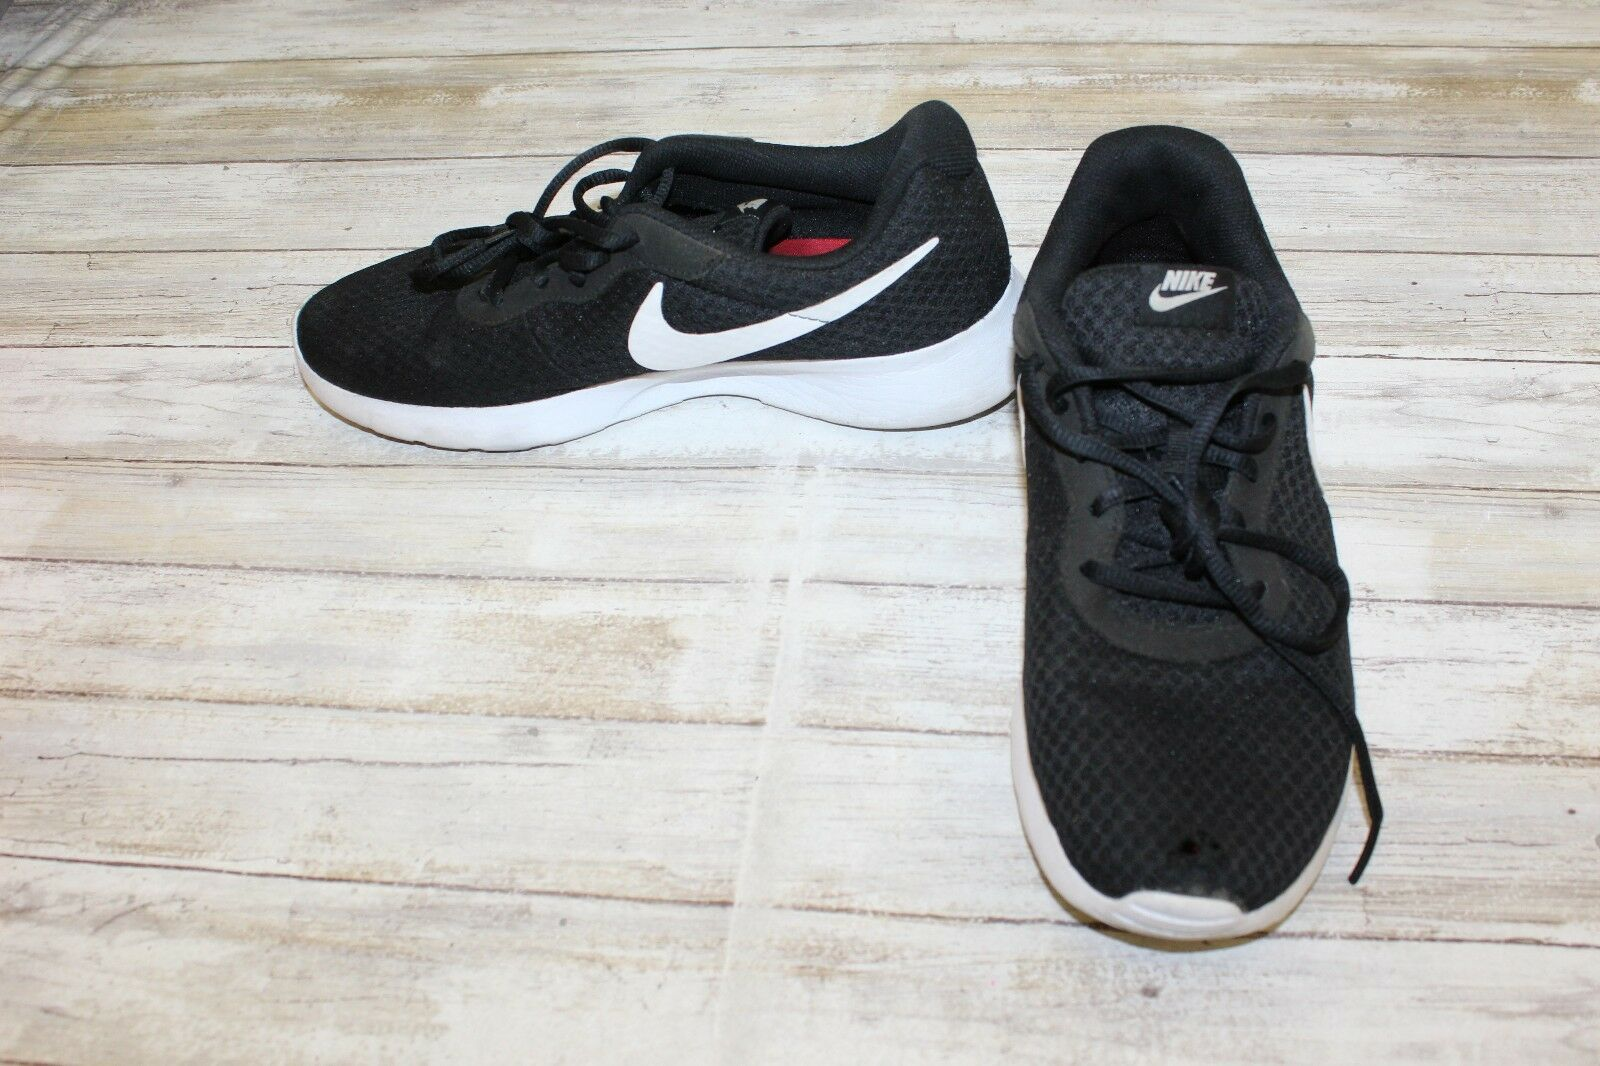 Nike Tanjun Athletic Shoes - - Shoes Men's Size 9.5 - Black 68a22a